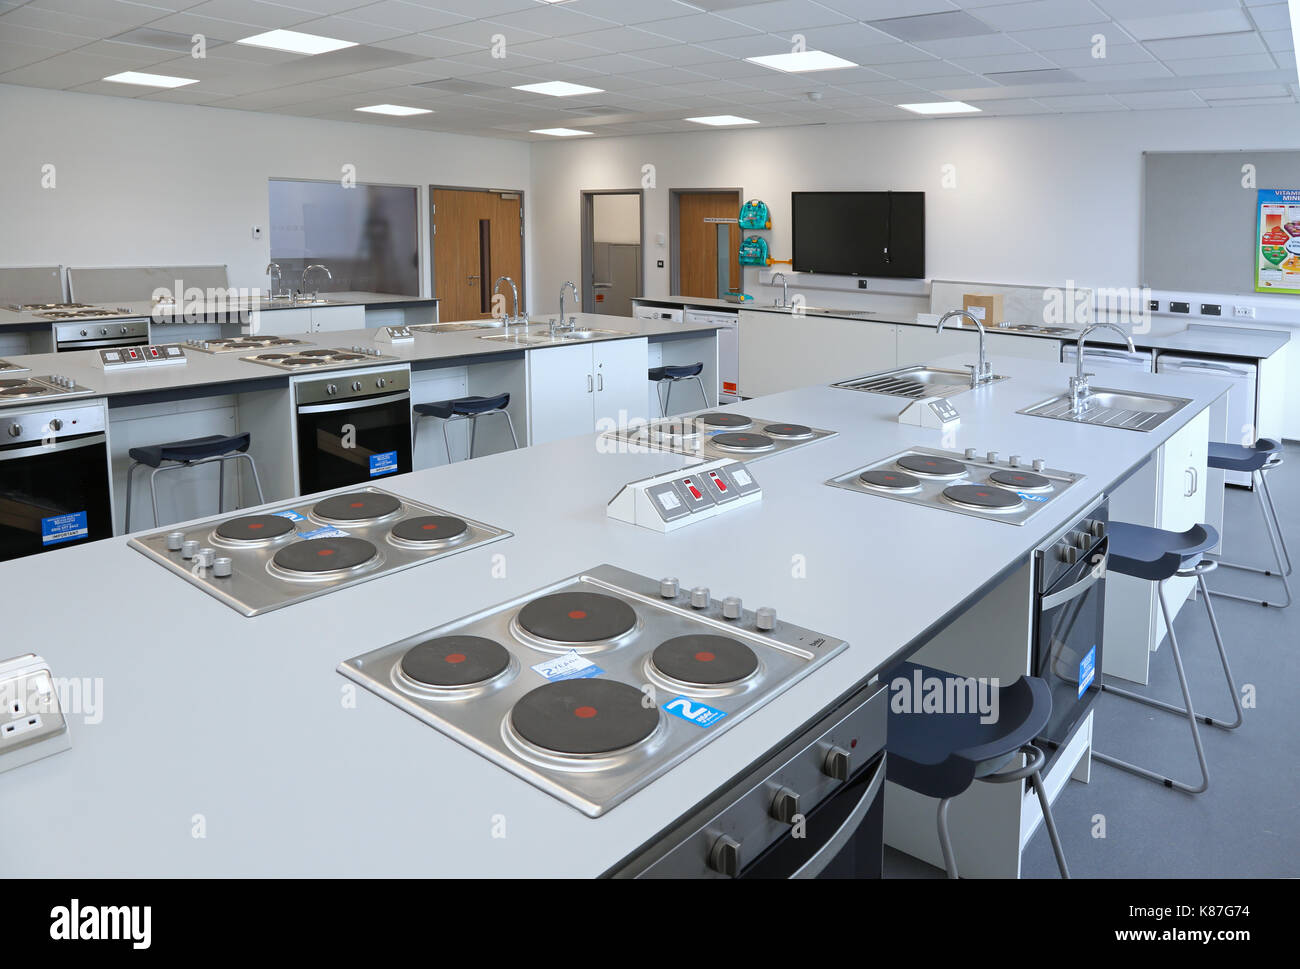 Domestic Science / cookery classroom in a new, London secondary school. Shows hobs and ovens and teachers bench beyond. - Stock Image